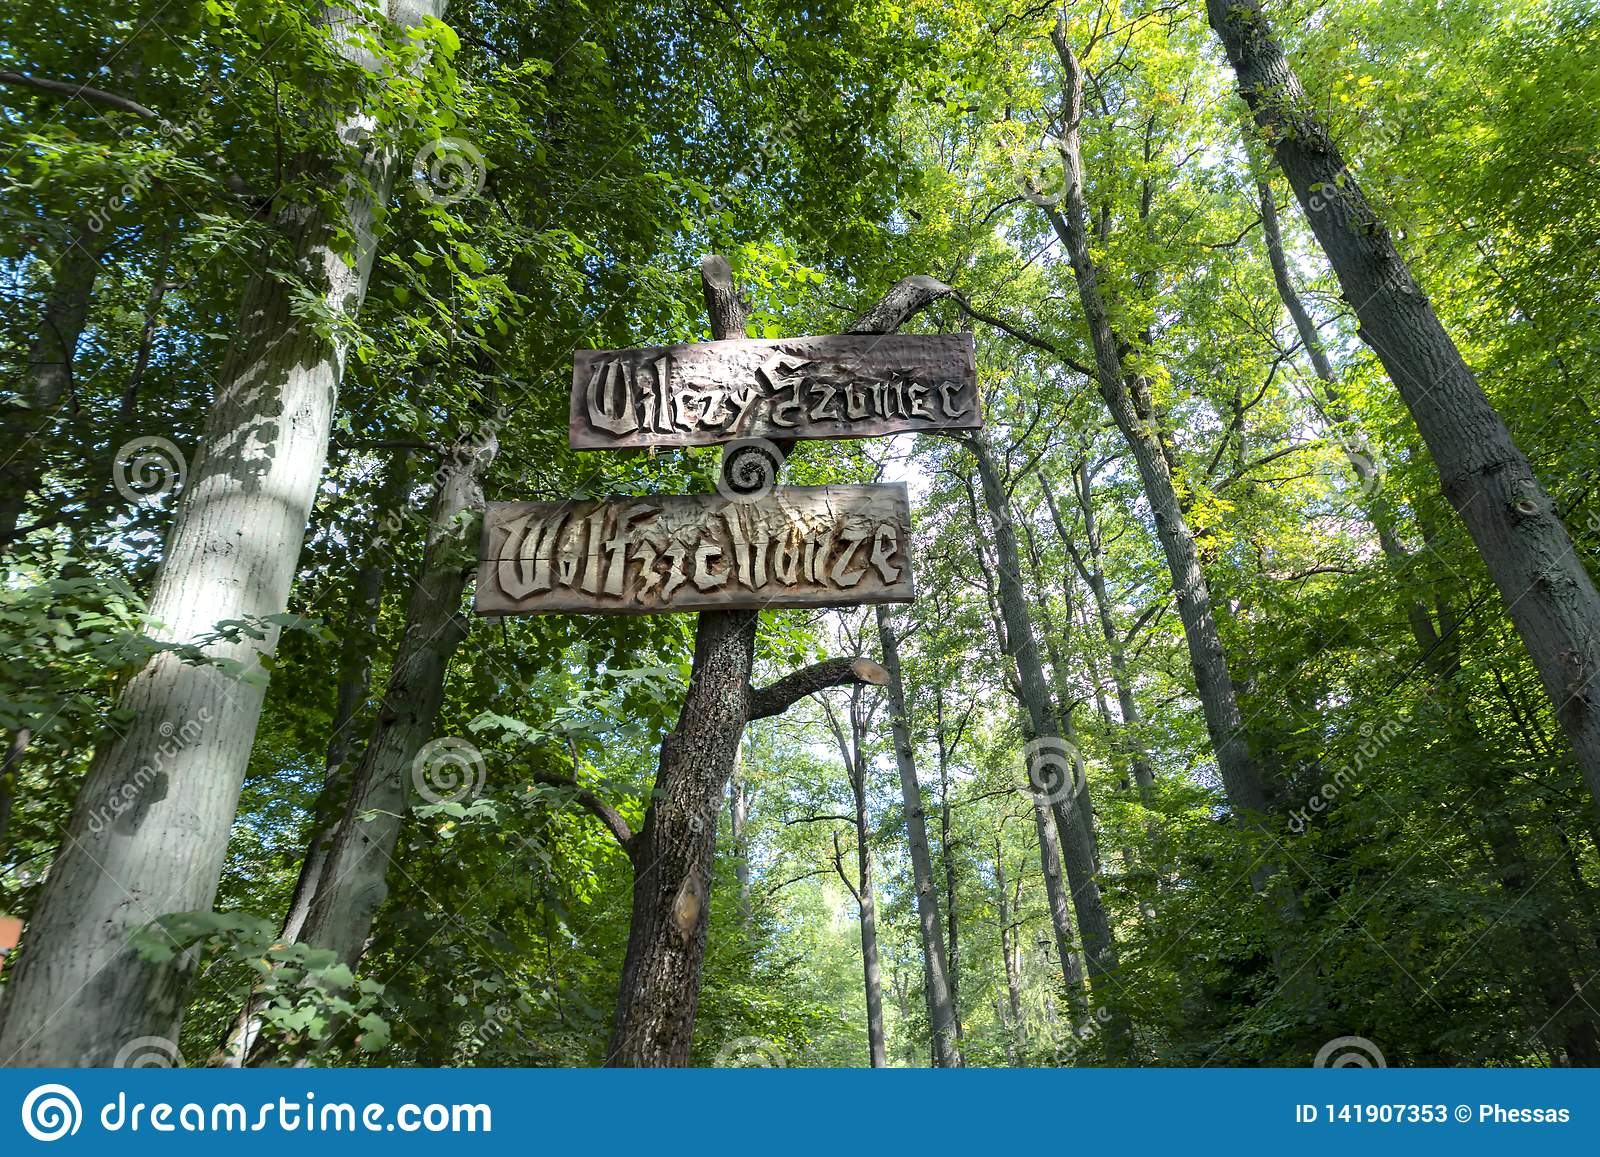 Poland 14-09-2018 Wolf, s Lair Hitler, s Headquarters Near the city of Ketrzyn, north / east Poland View of the road signs, and